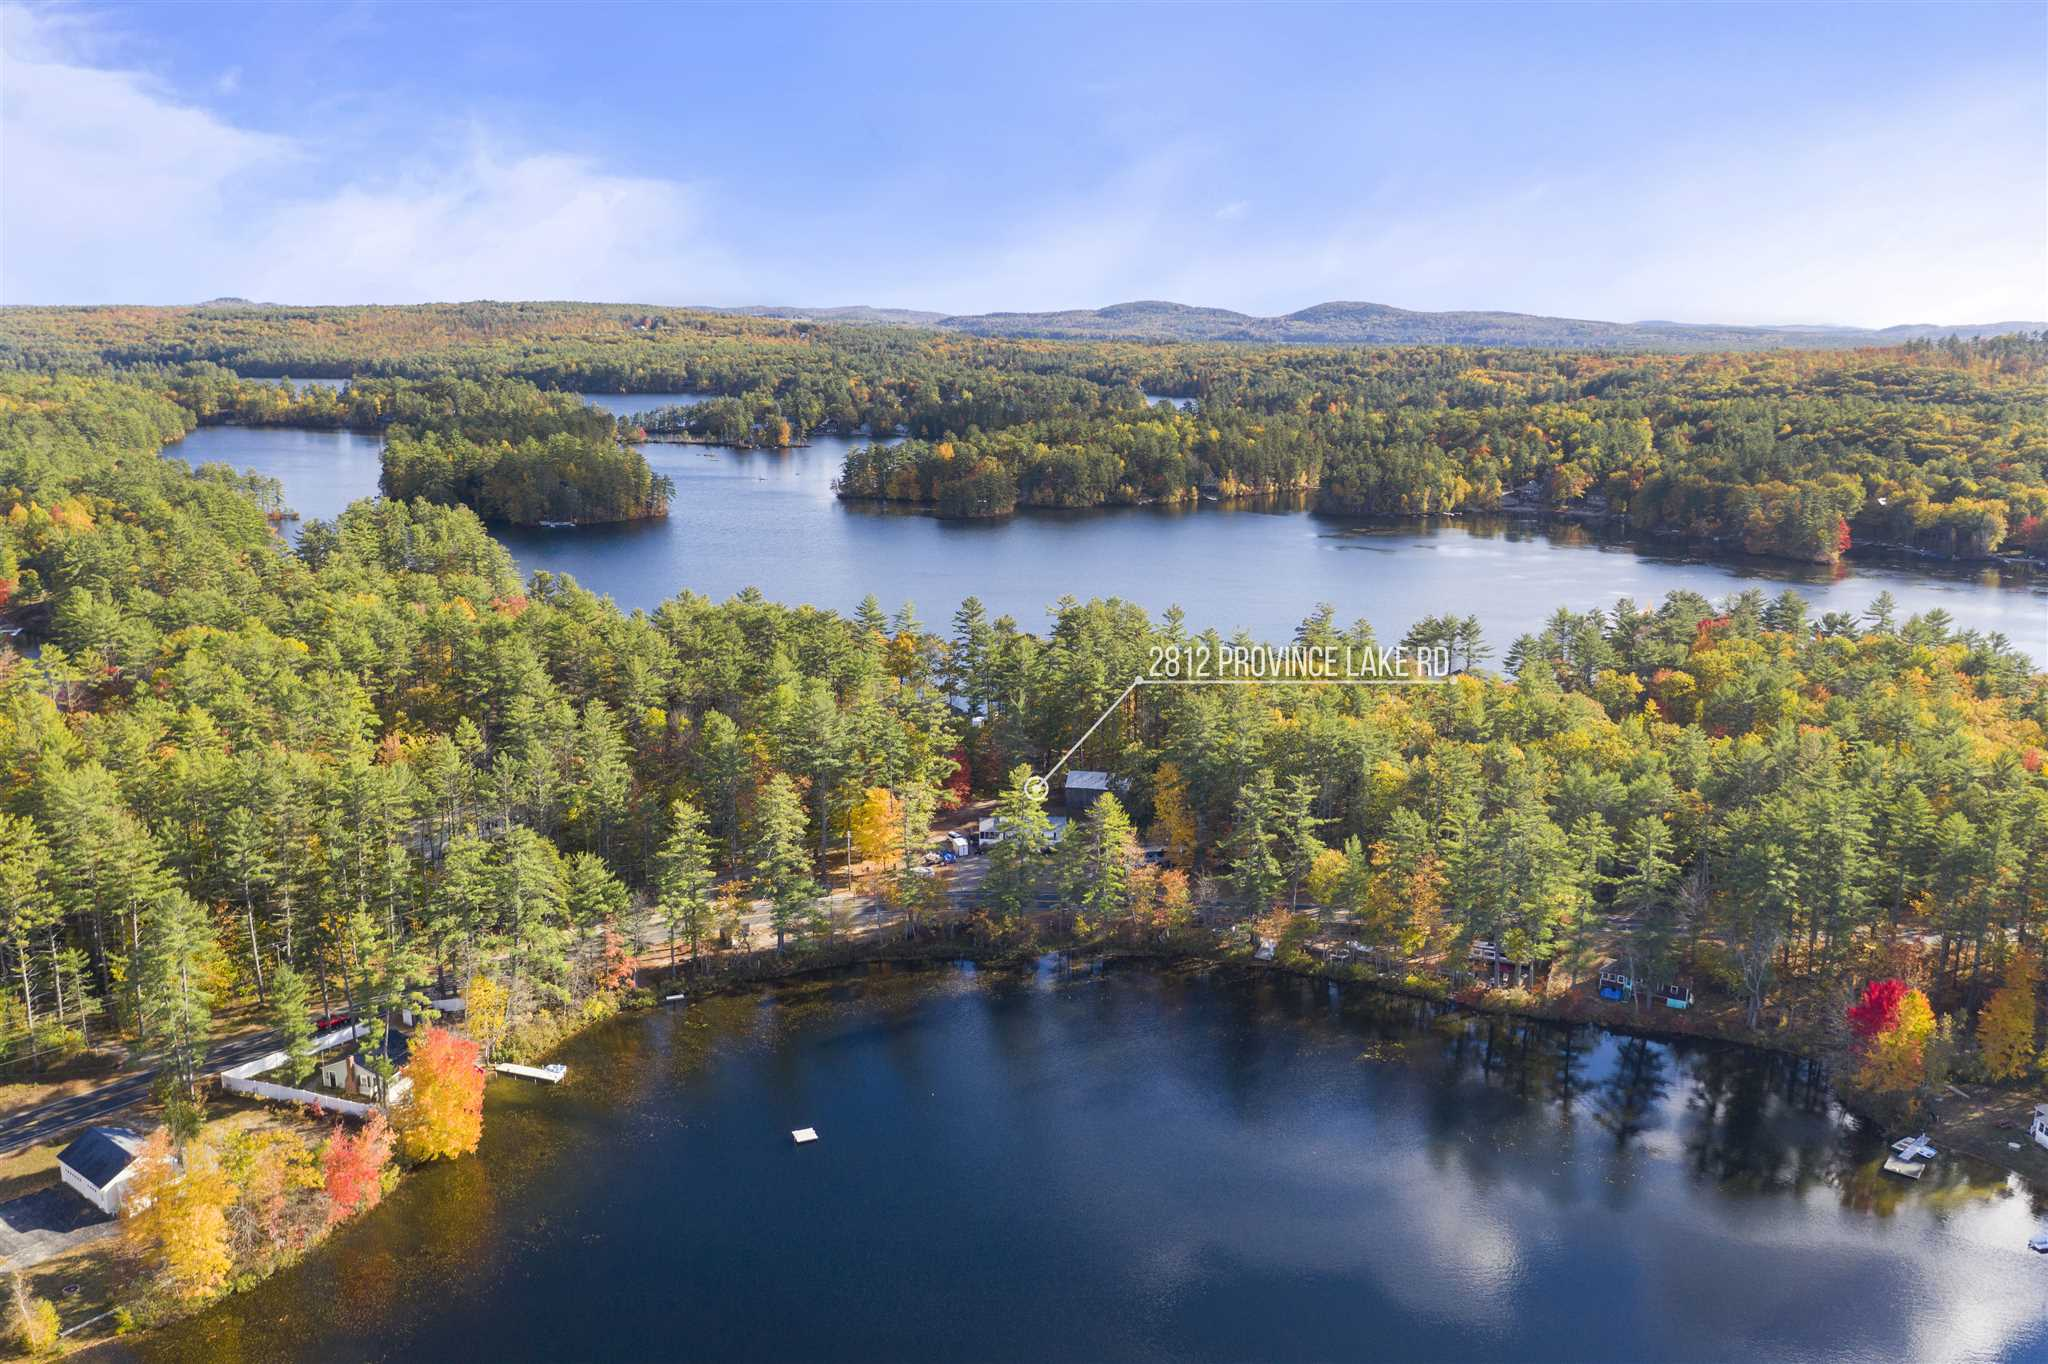 New Pond Waterfront Home Listings